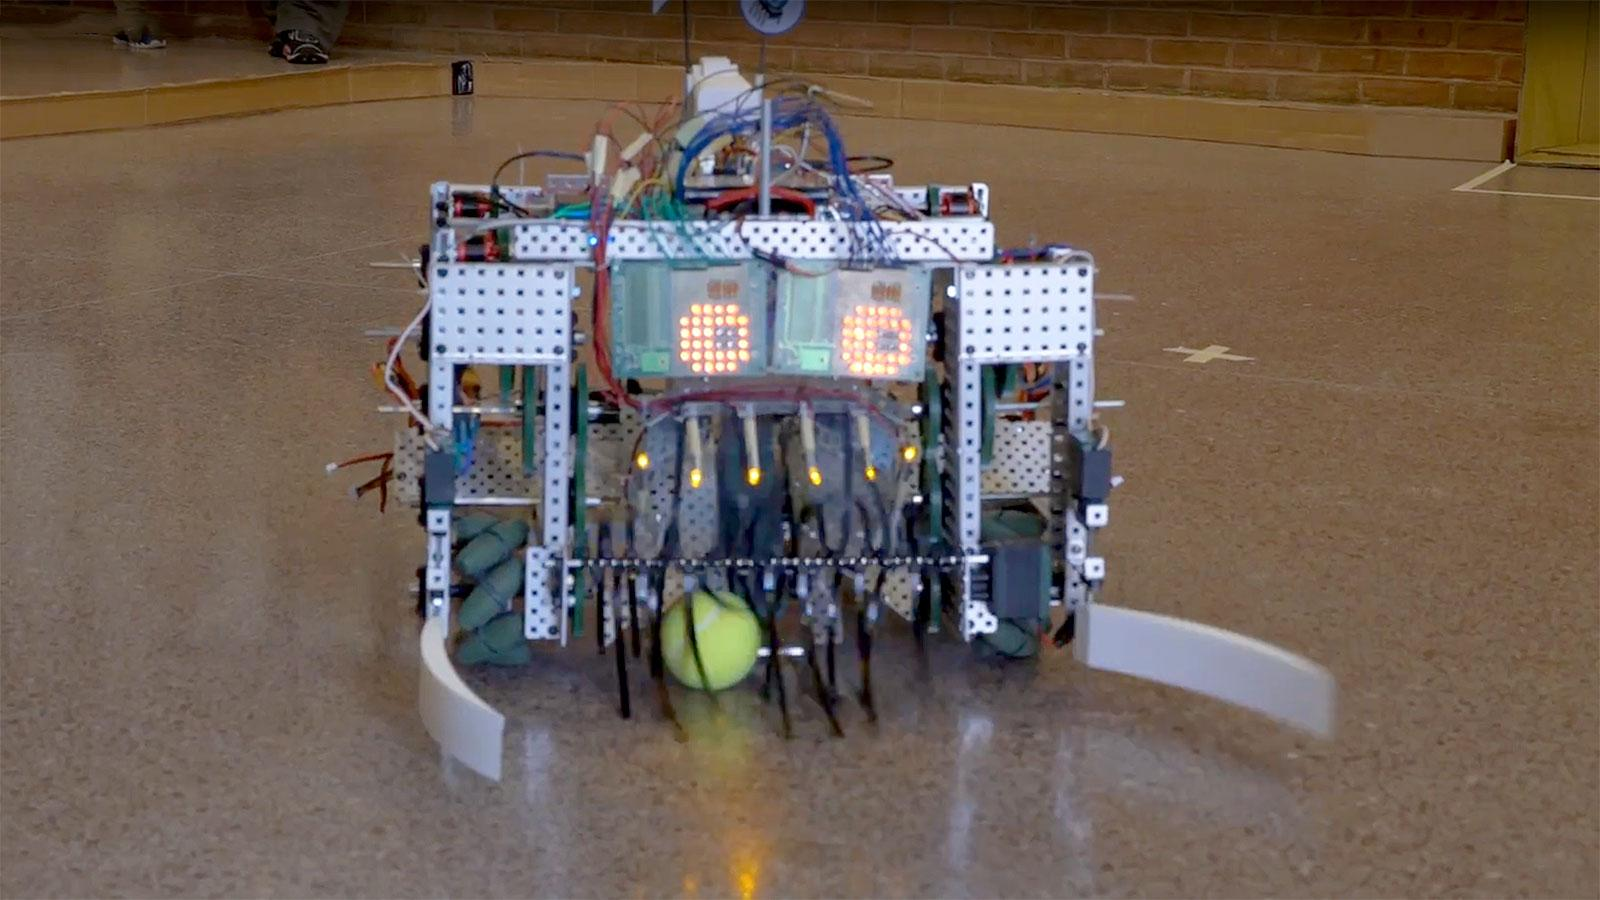 Soccer playing robot built by Amherst College students as a summer research project